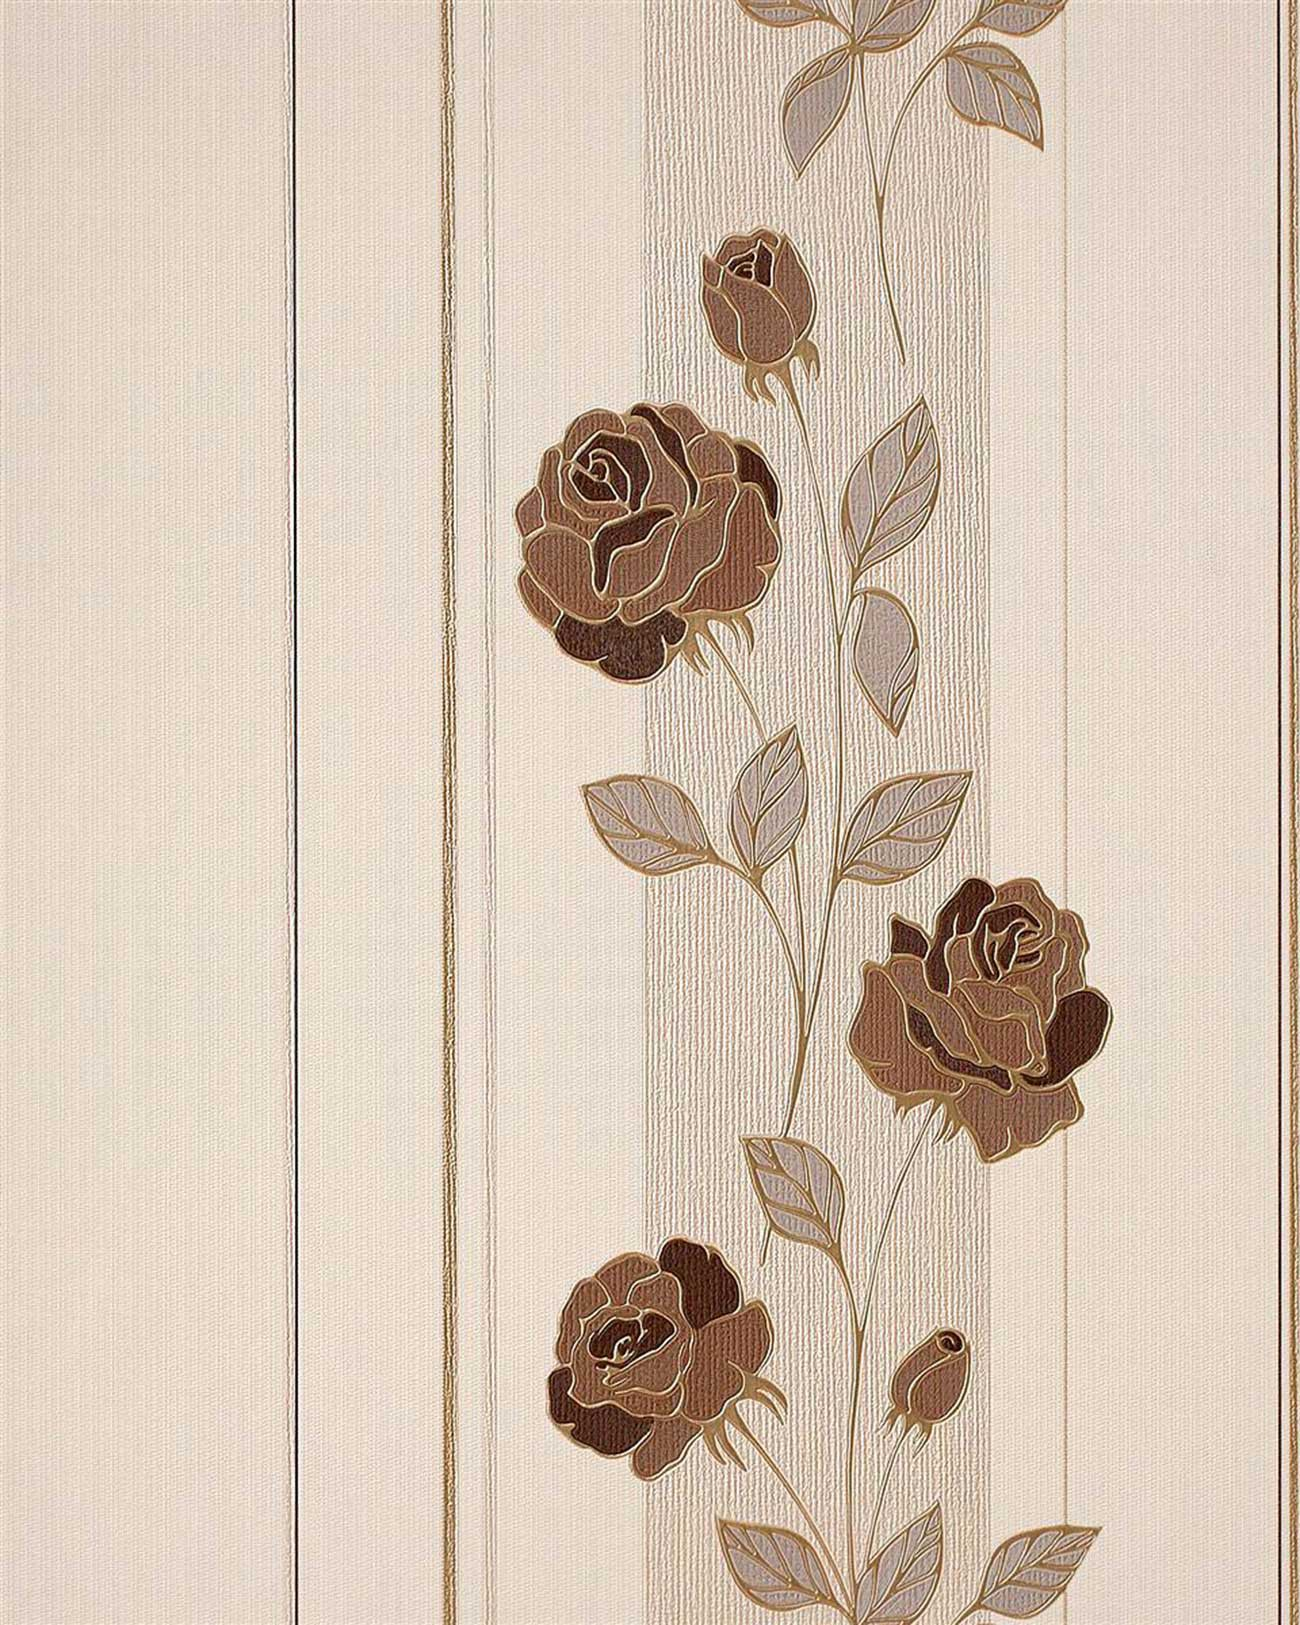 blumen tapete edem 766 36 deluxe floral streifen landhaus blumentapete rosen beige silber braun. Black Bedroom Furniture Sets. Home Design Ideas